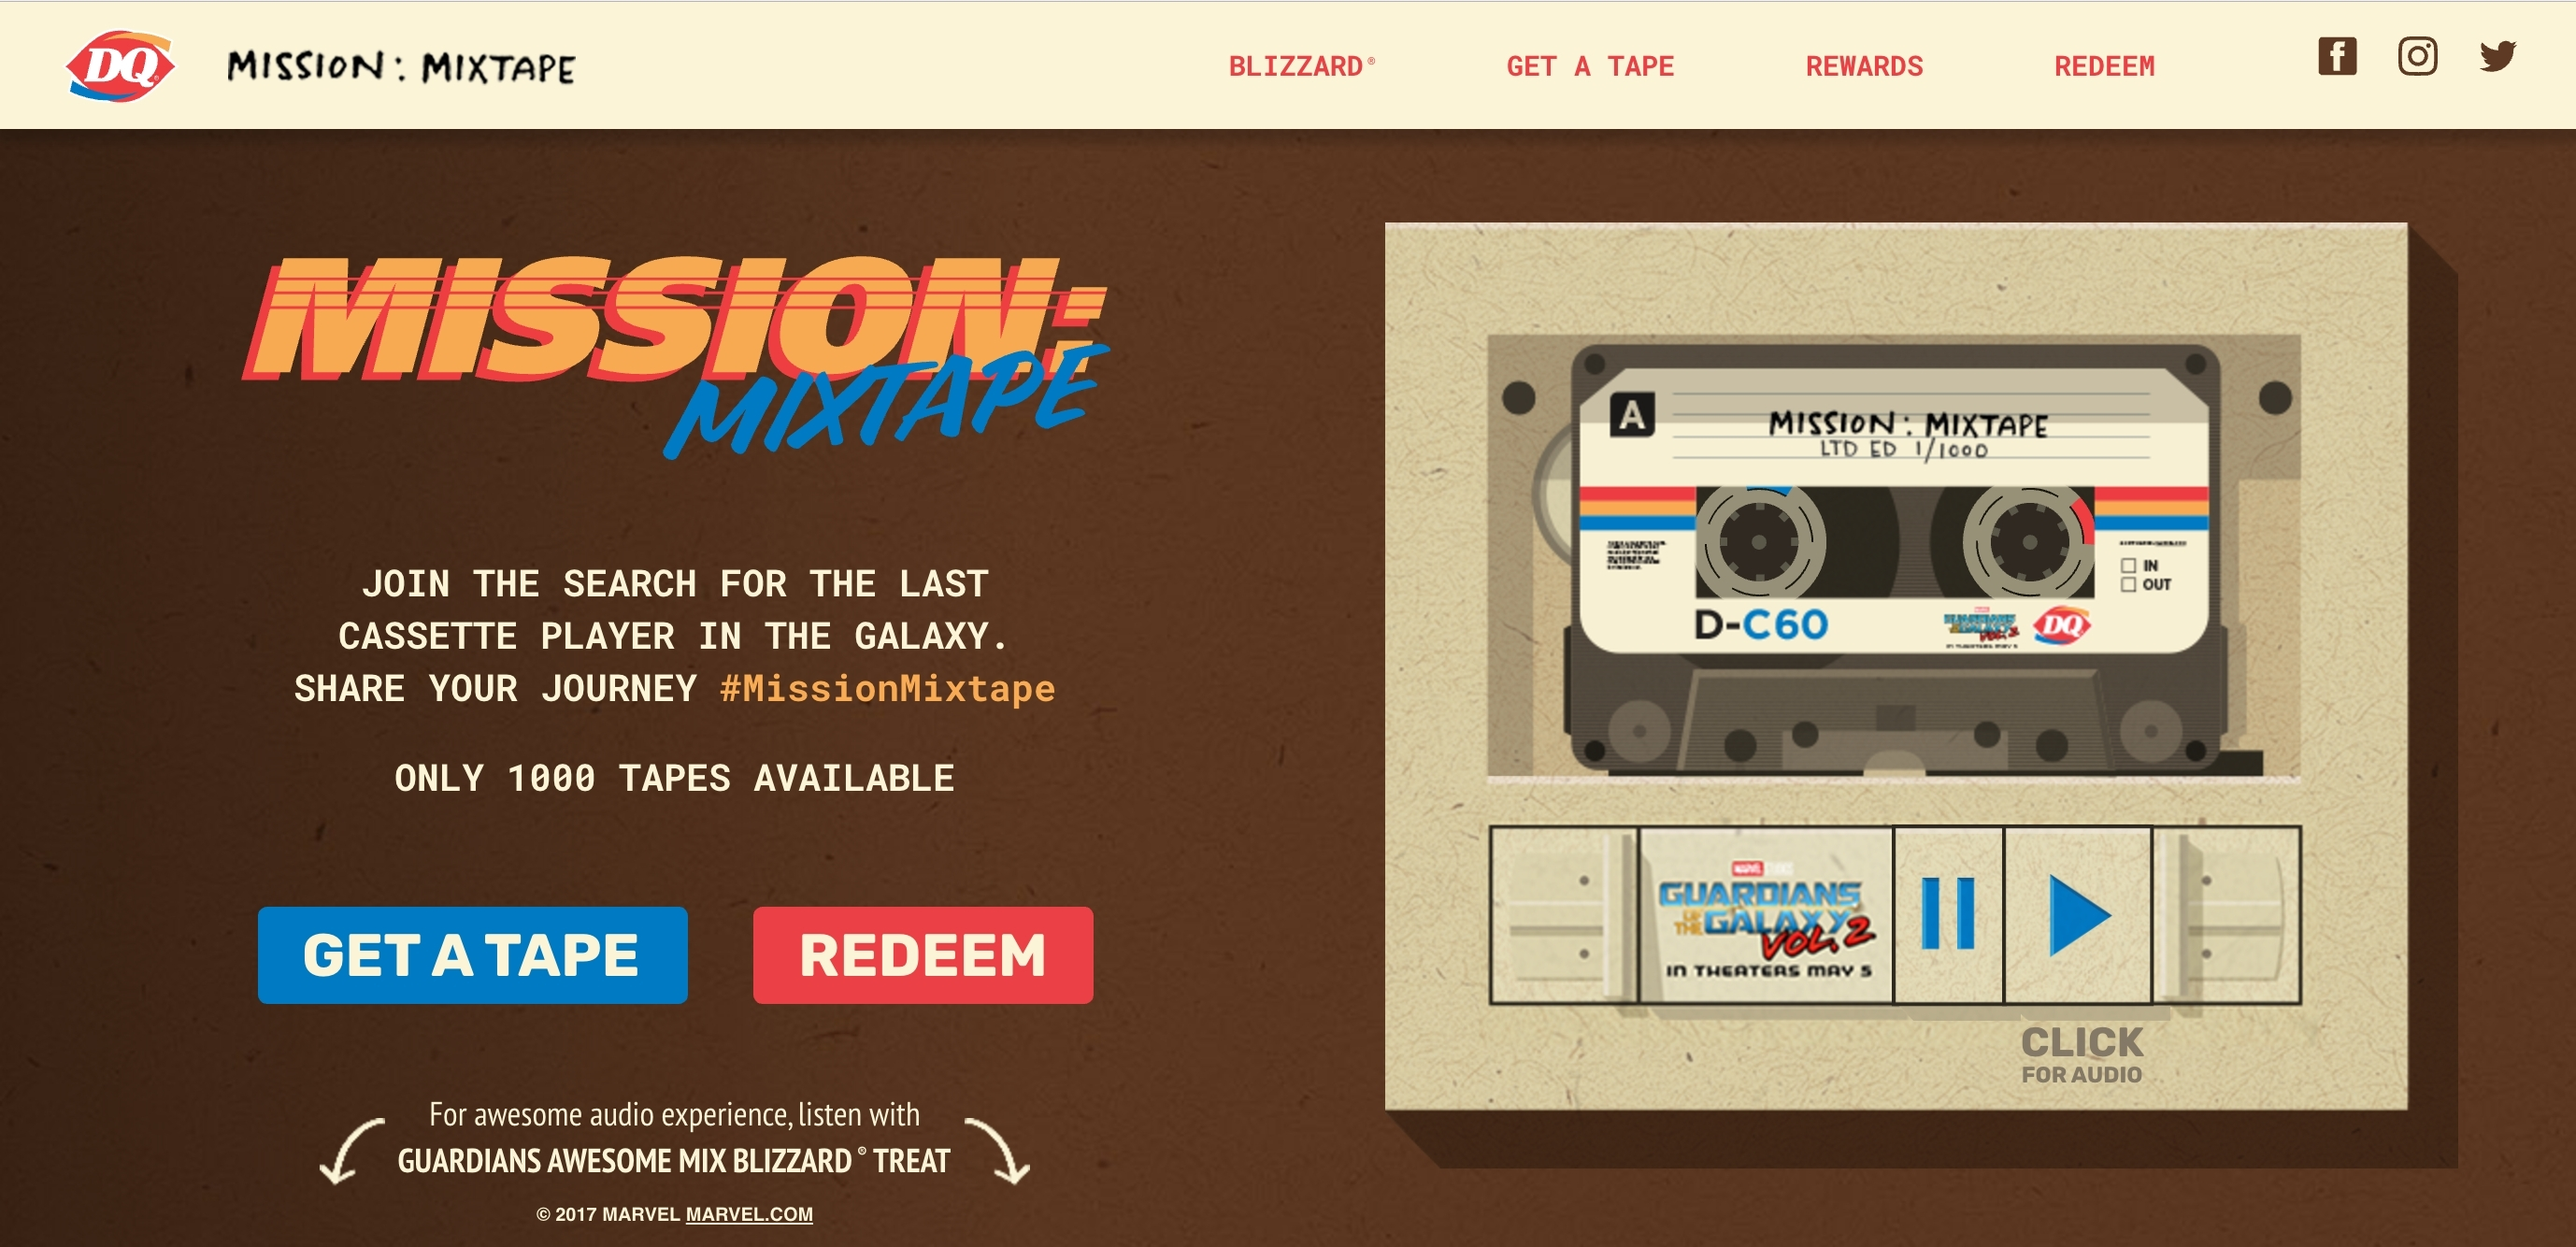 """Starting April 26 at 12 p.m. CDT, Fans can claim one of 1,000 Mission Mixtapes at MissionMixtape.com. Once claimed, Fans must search the galaxy for a cassette player to play the tape and get a special code for prizes ranging from limited edition, cast-signed Marvel Studios' """"Guardians of the Galaxy Vol. 2"""" movie posters to DQ gift cards. Fans can share their missions or follow along with #MissionMixtape. (Photo: Business Wire)"""